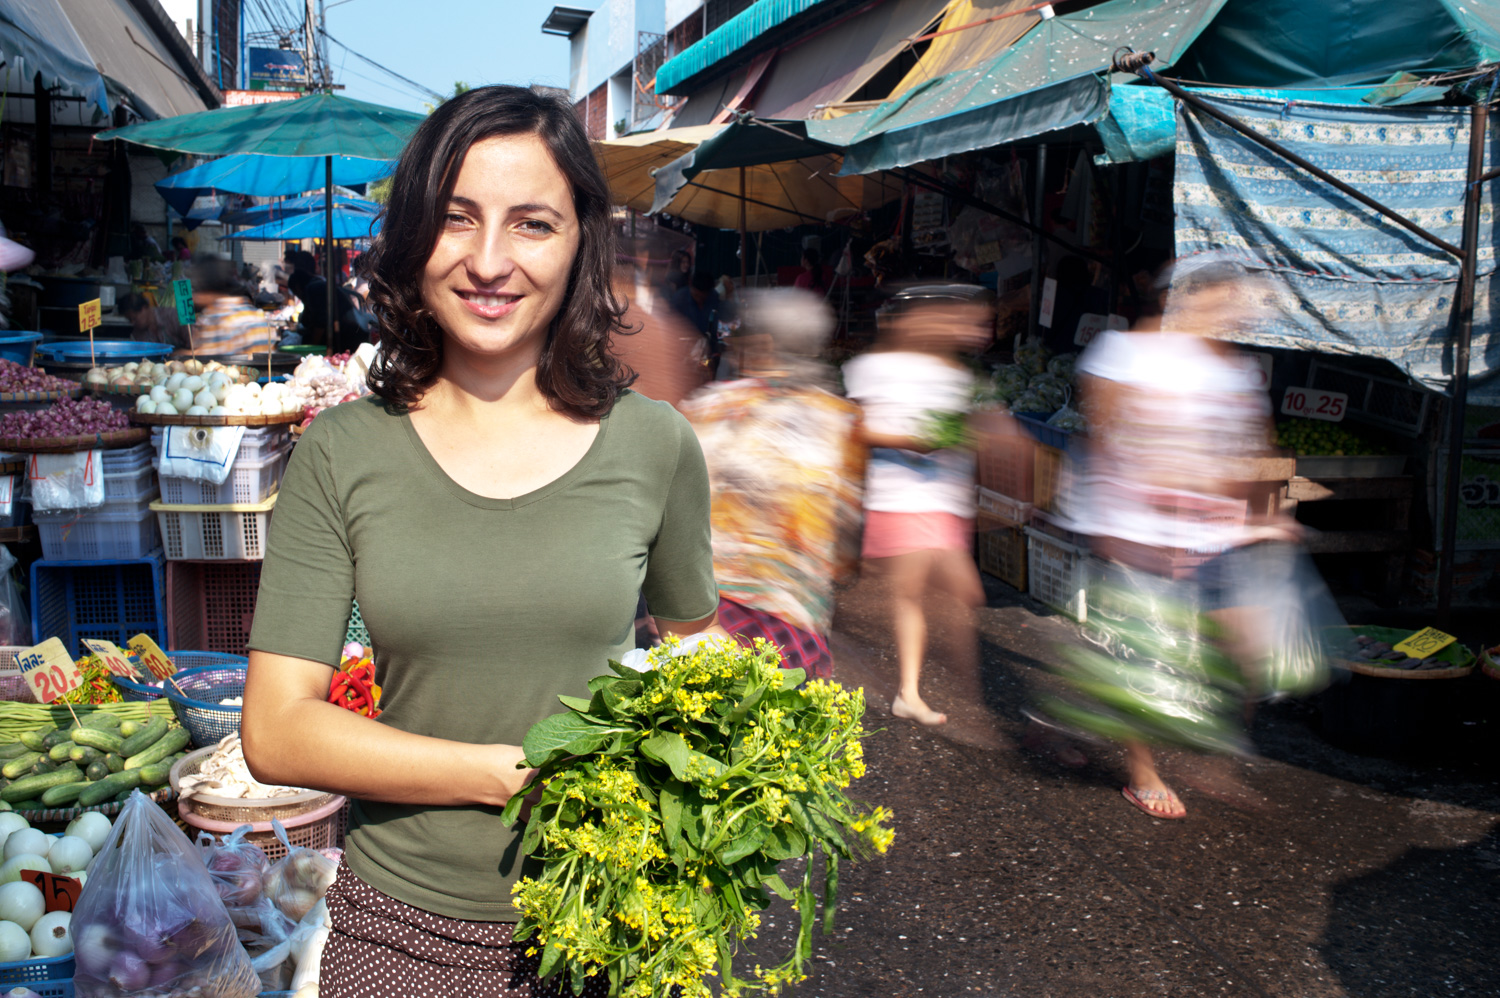 Market Scene Using a Slow Shutter Speed to a Create Sense of Motion